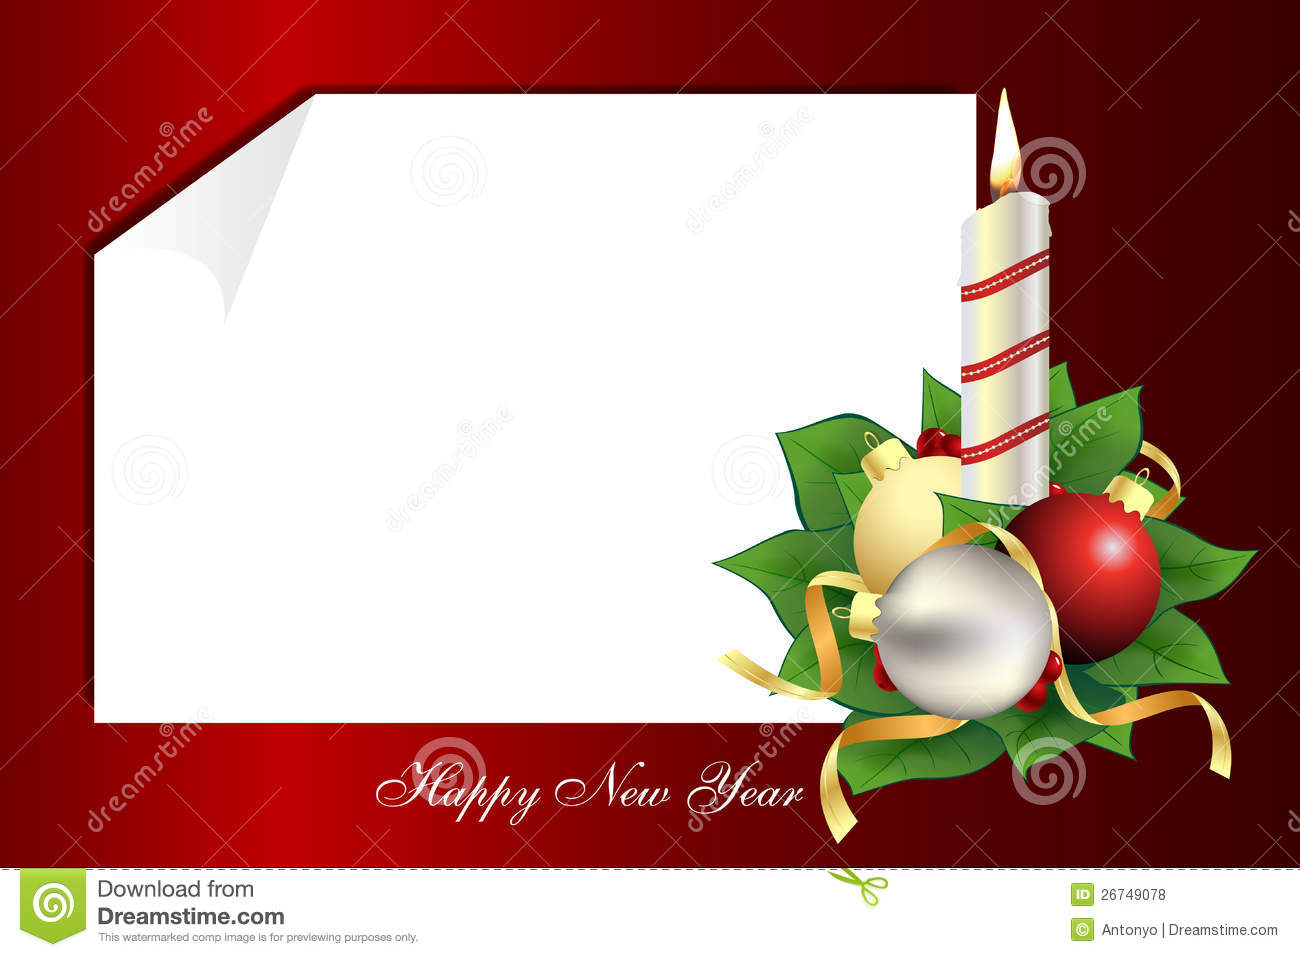 Christmas Letter Royalty Free Stock Photos - Image: 26749078